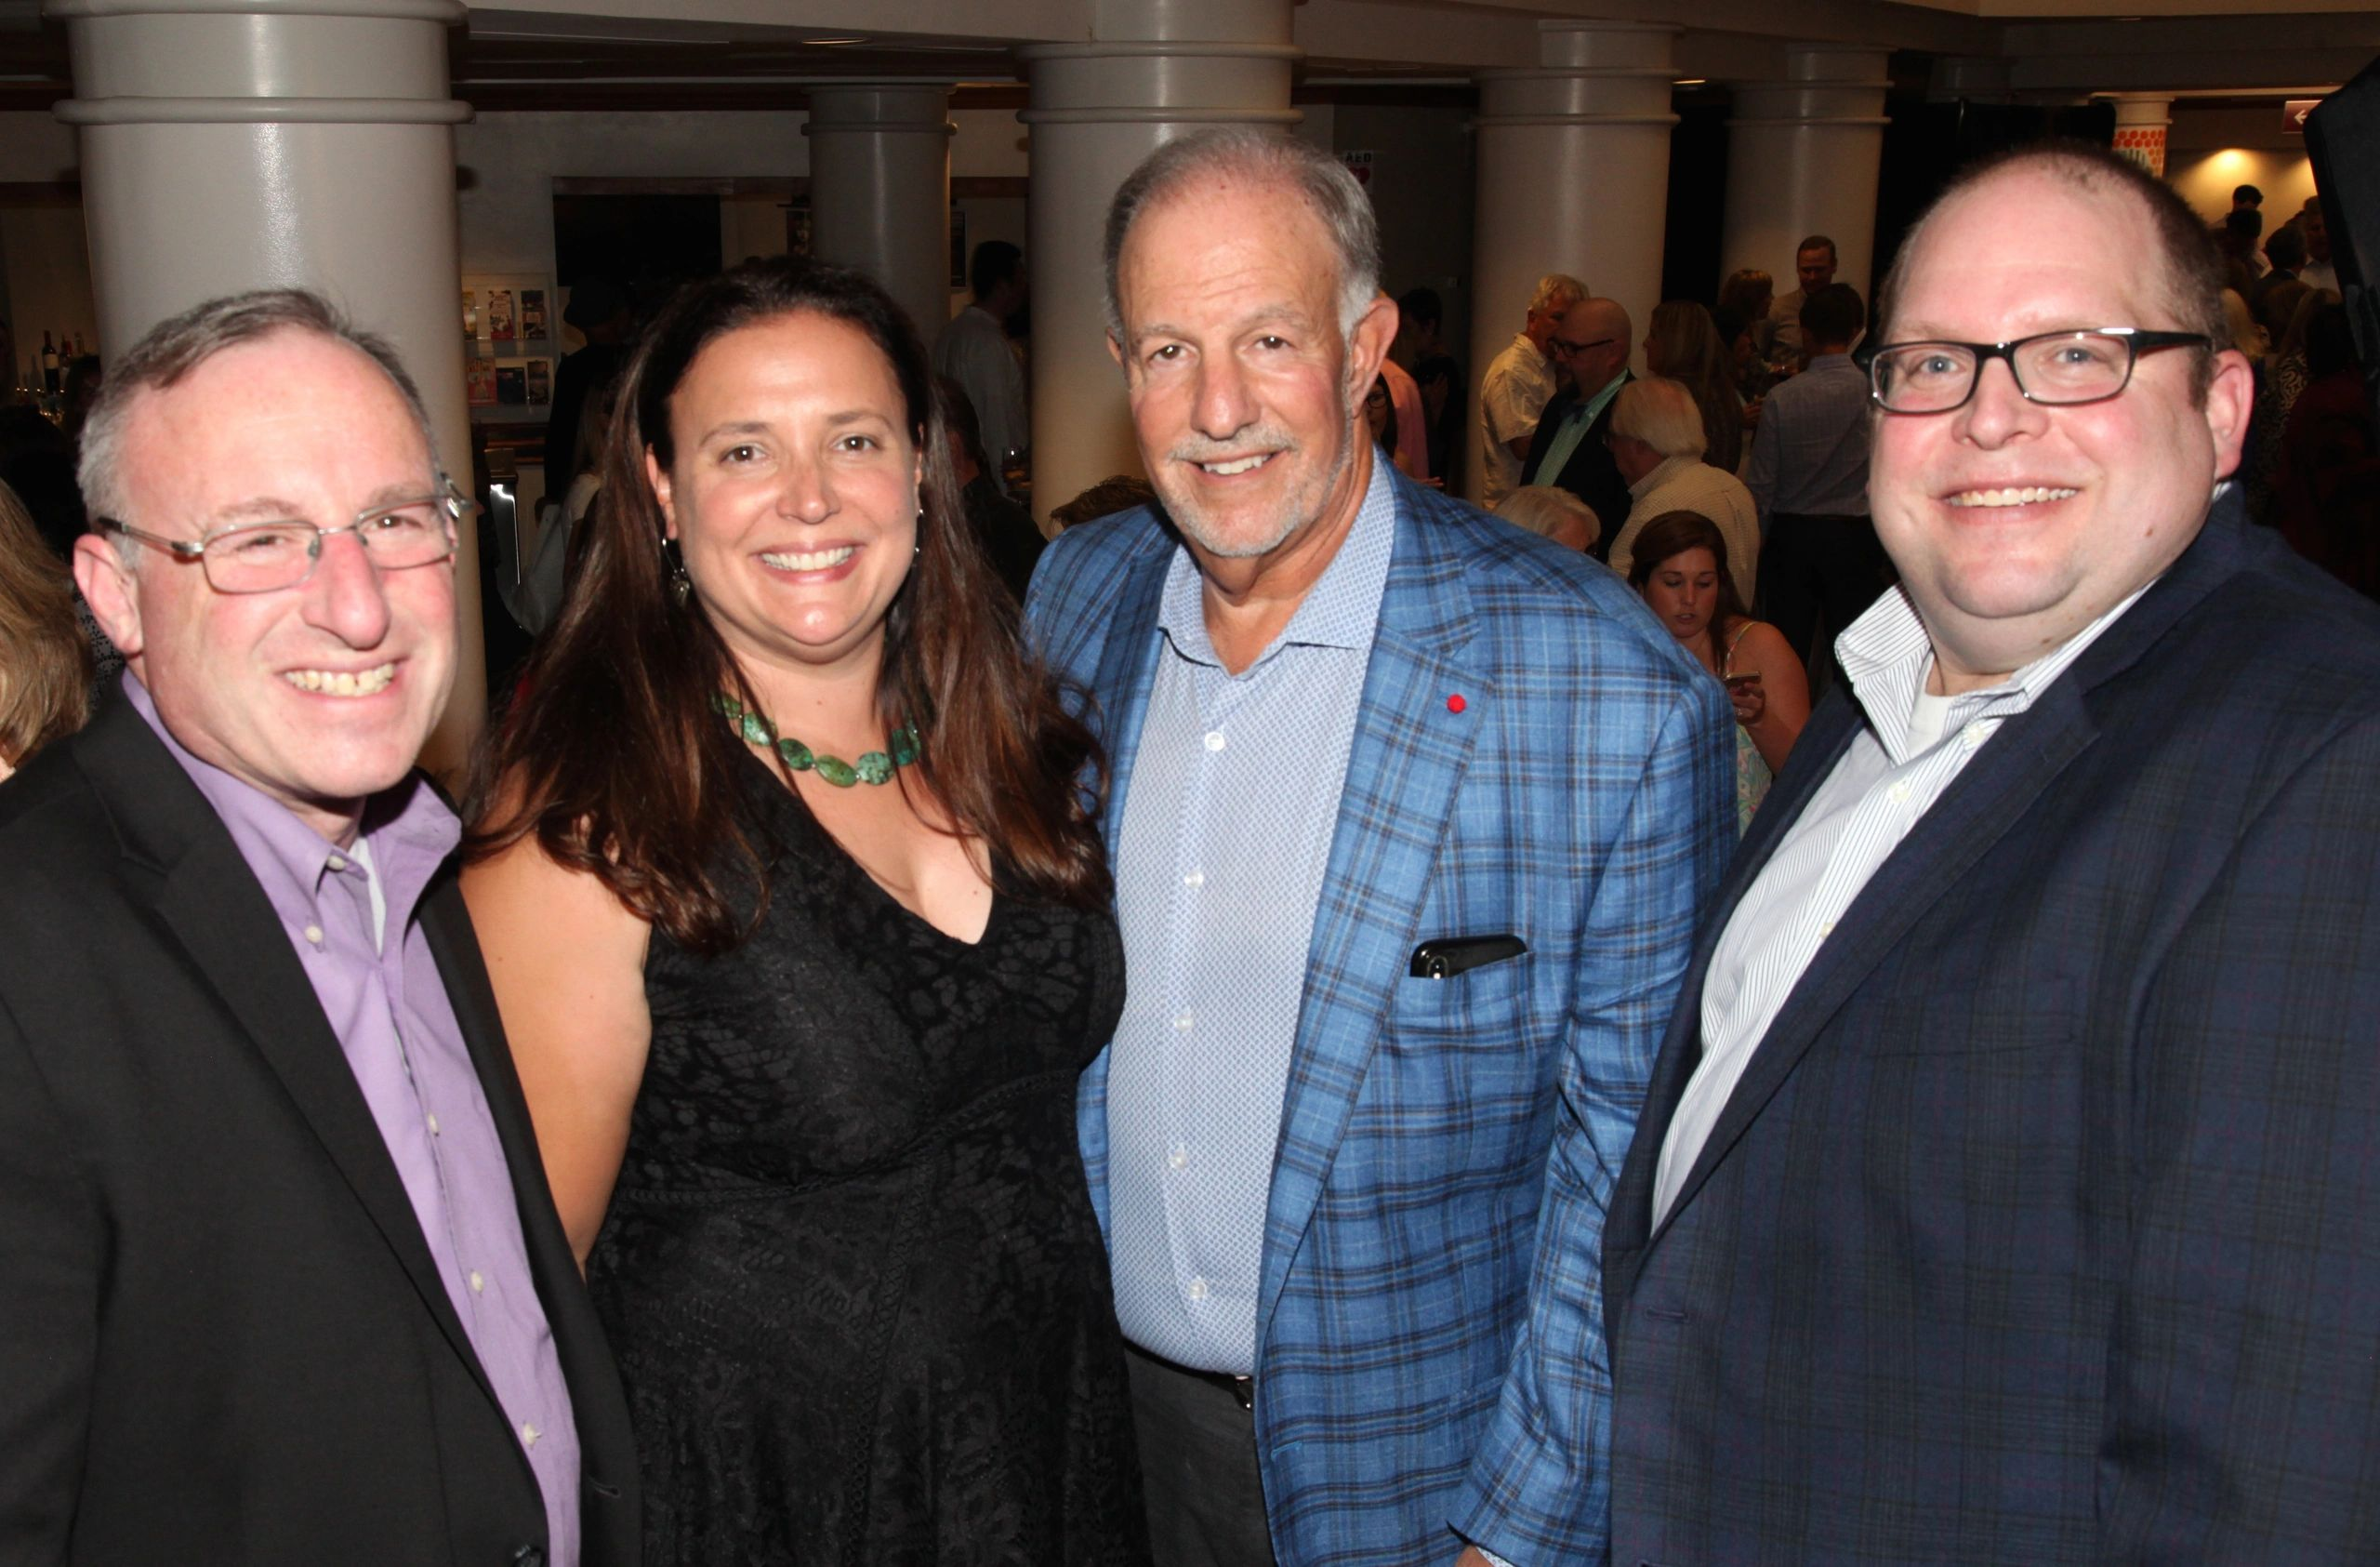 "{""blocks"":[{""key"":""2dc6d"",""text"":""Music With Friends DC Co-Founding Directors, Barry Feil and Alex Obuchowski, and Membership Director, Laura Bruckmann, with Music With Friends Founder, Larry Farber, at the September 2019 Gladys Knight pre-show party"",""type"":""unstyled"",""depth"":0,""inlineStyleRanges"":[],""entityRanges"":[],""data"":{}}],""entityMap"":{}}"